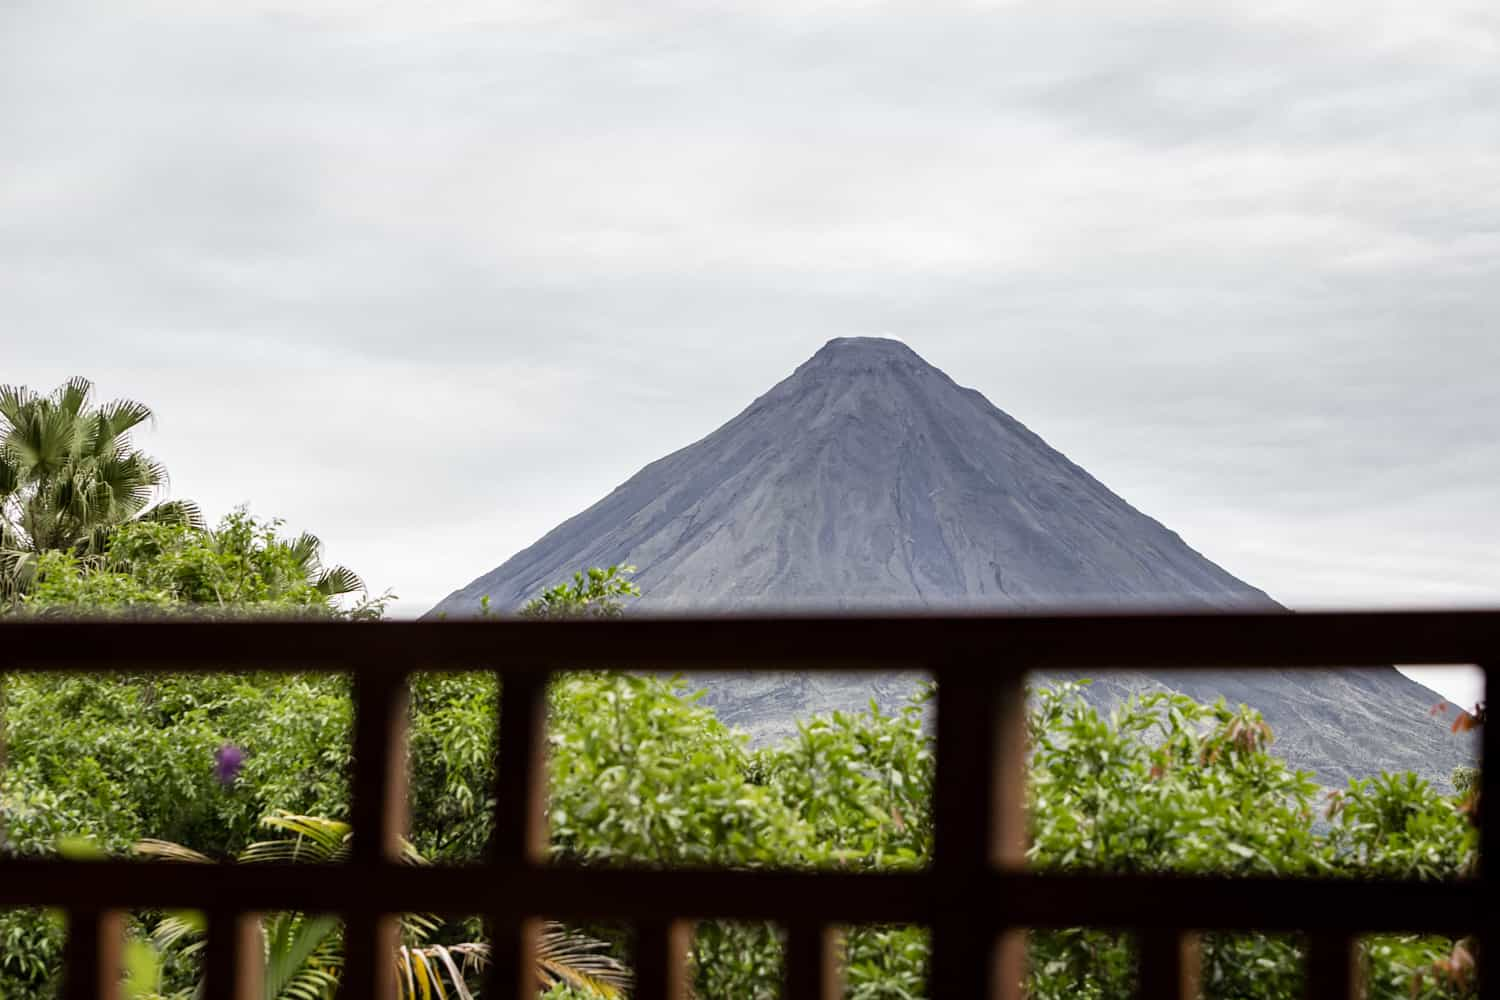 The guest rooms at Lost Iguana Resort have an unbelievable view of the Arenal Volcano and rainforest.